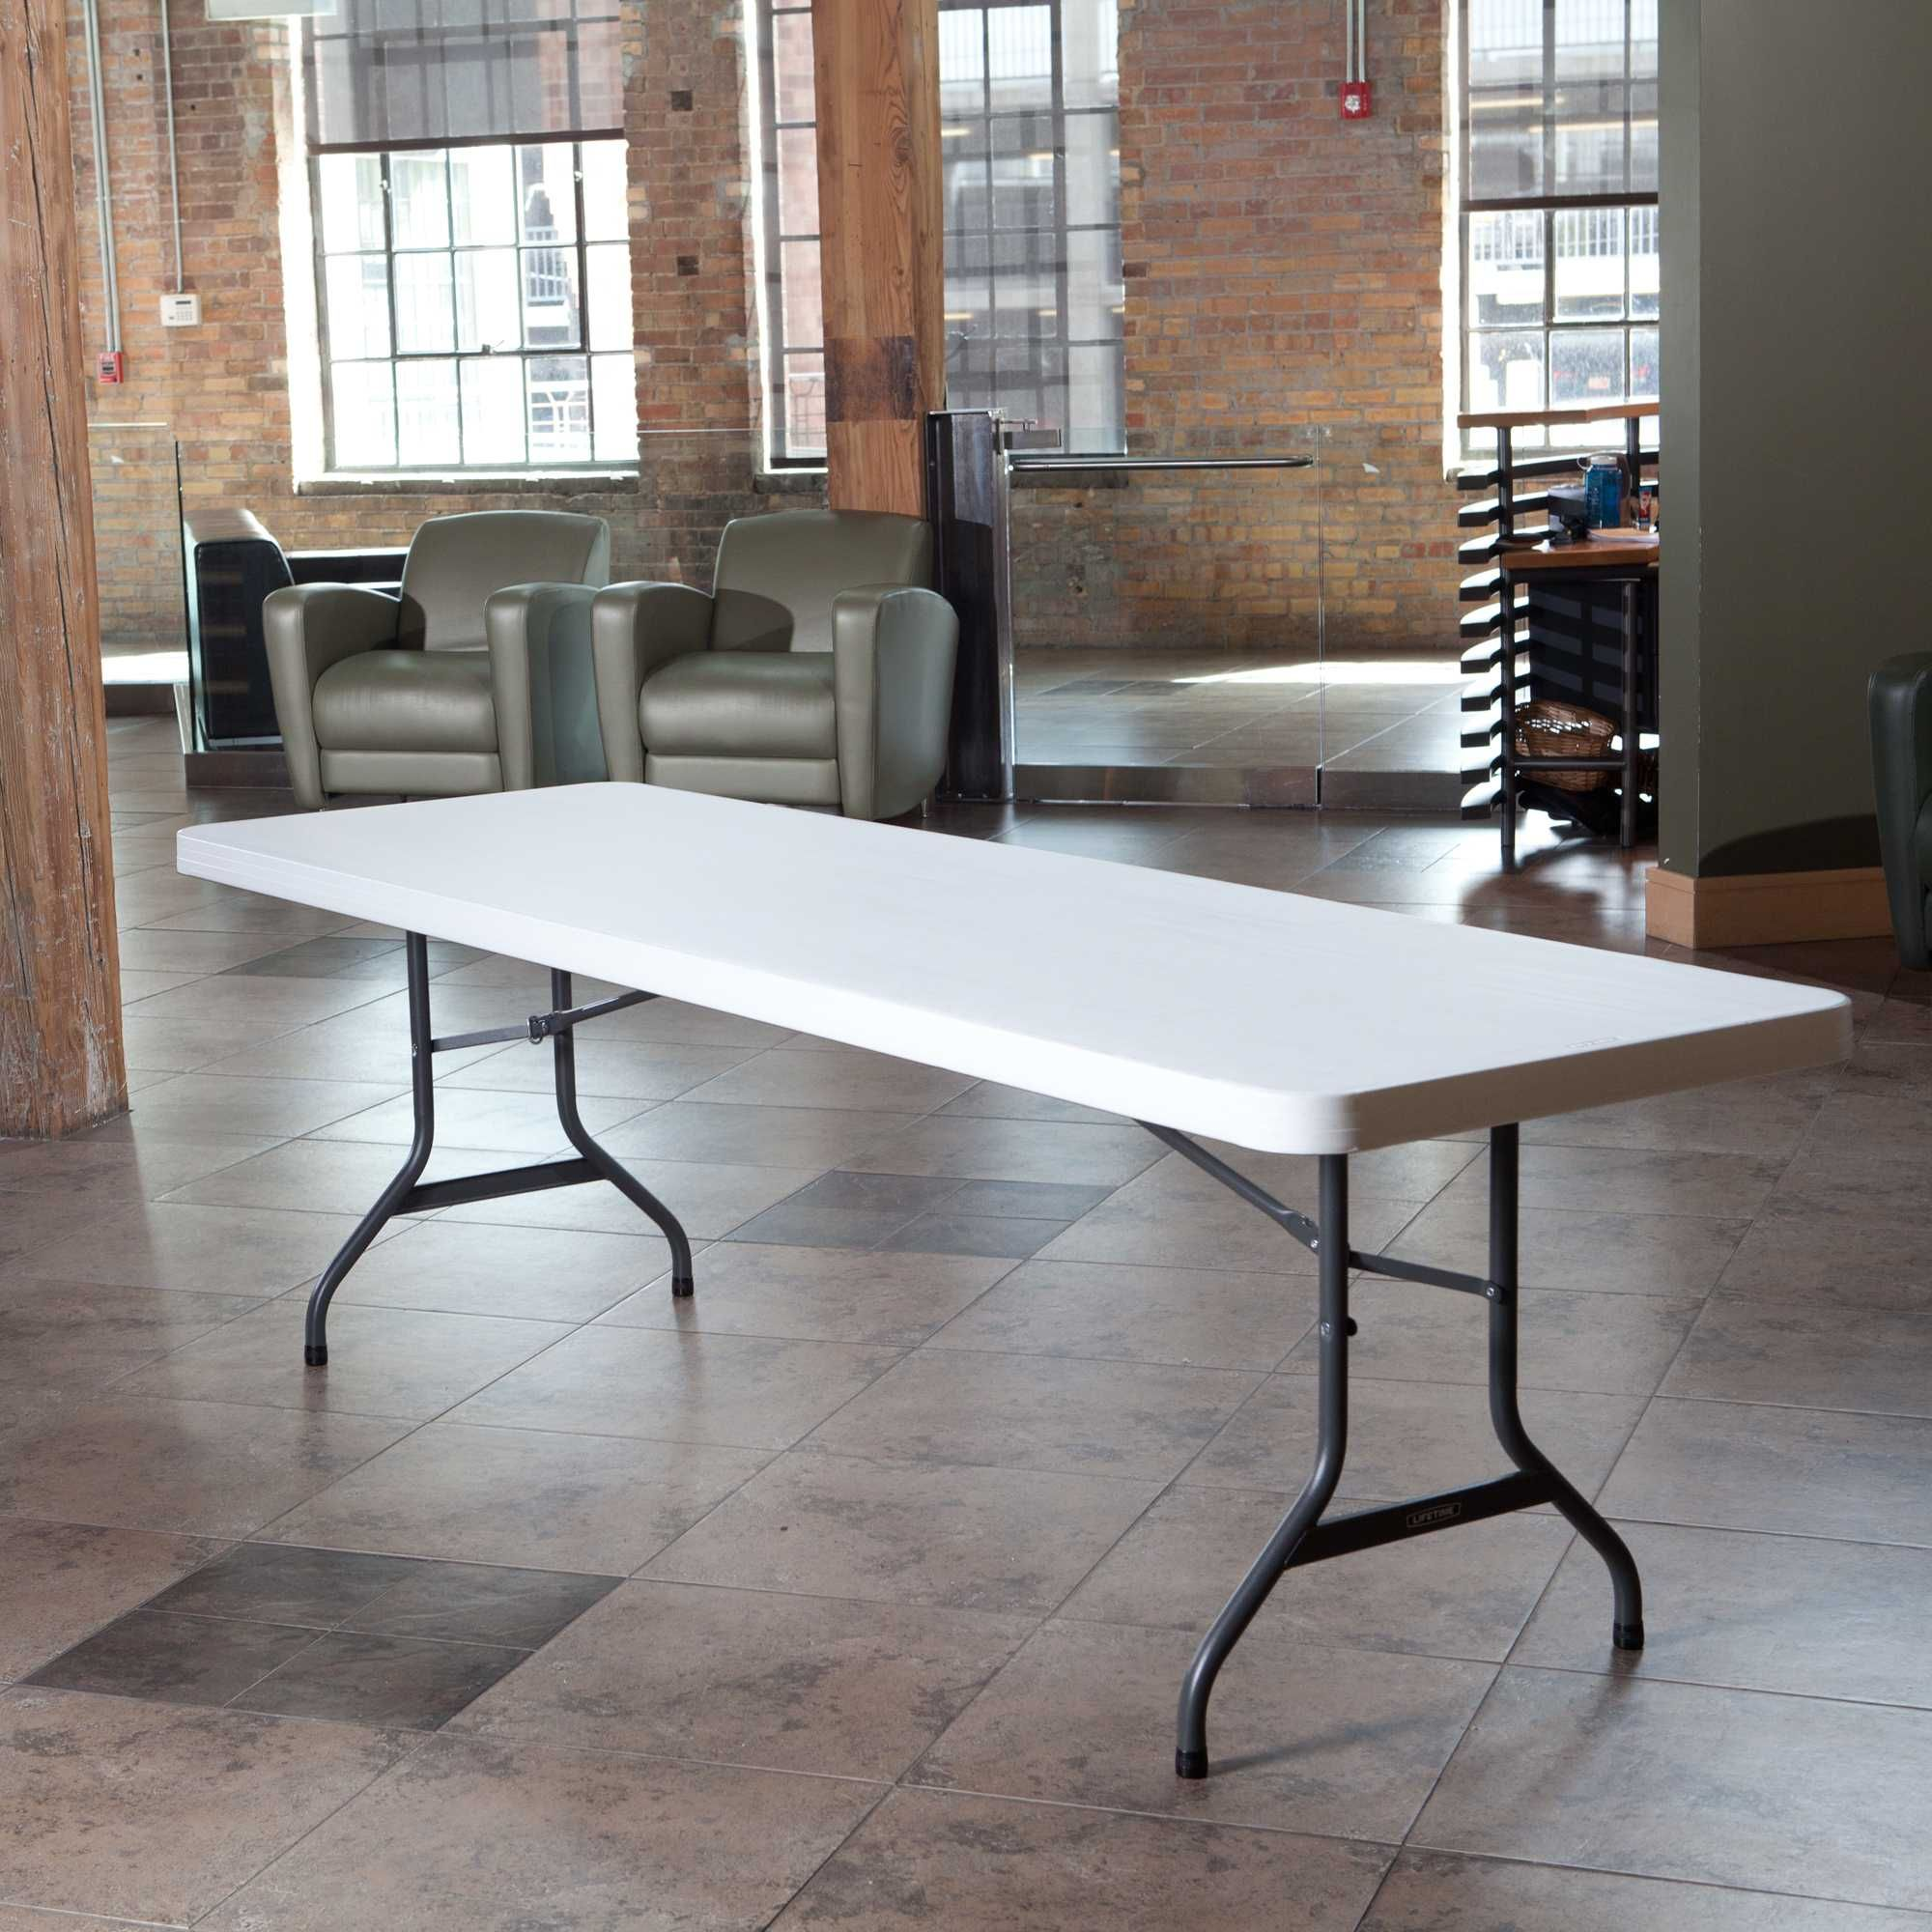 2997 - Lifetime 8-foot Commercial Folding Table Features 96